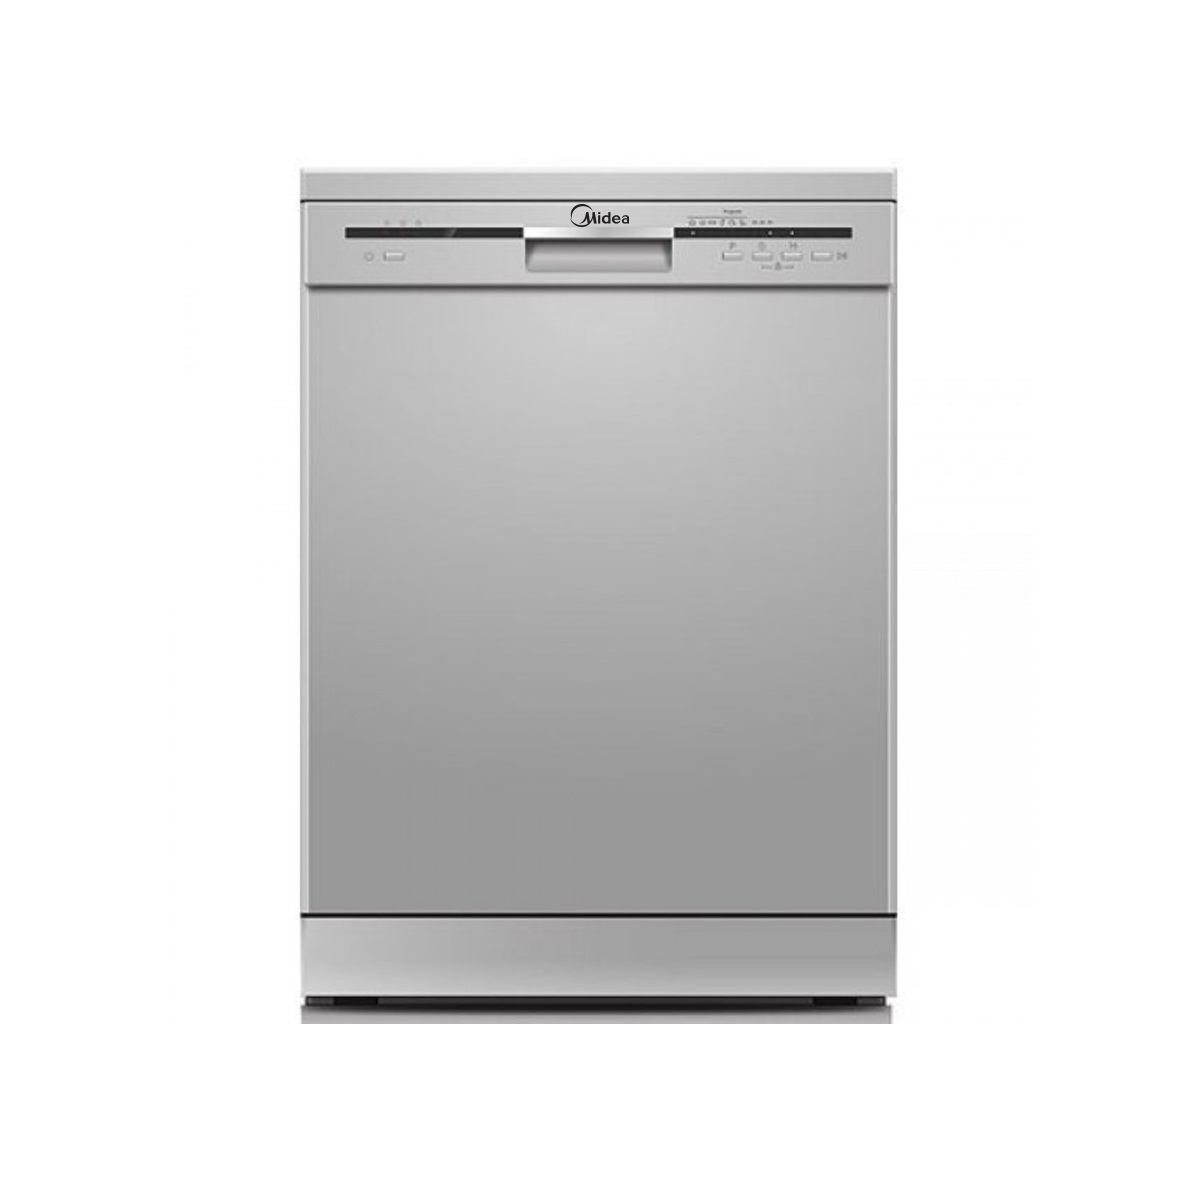 Midea WQP12-5201 Dish Washer